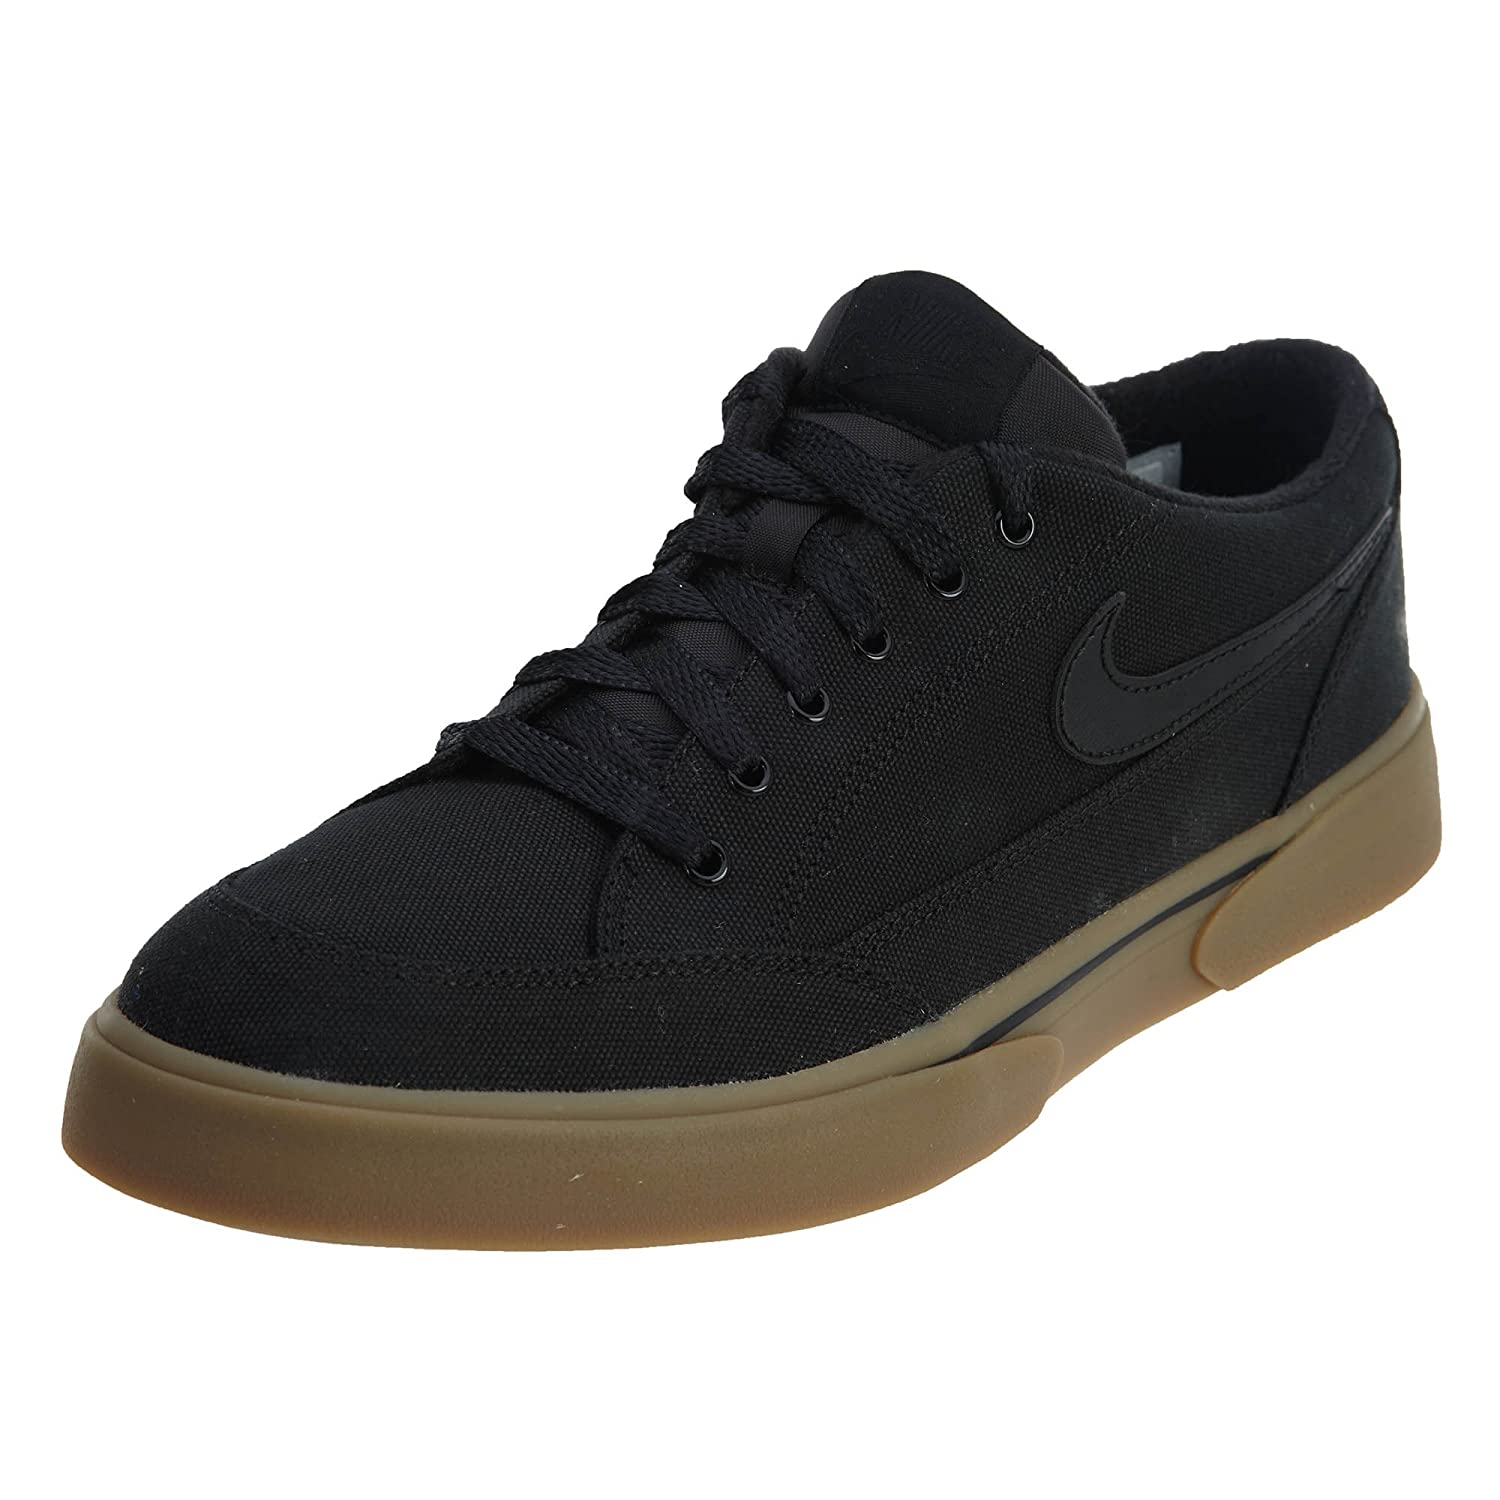 Nike Flash Lo Sneaker  8.5 D(M) US|Black/Gum Brown